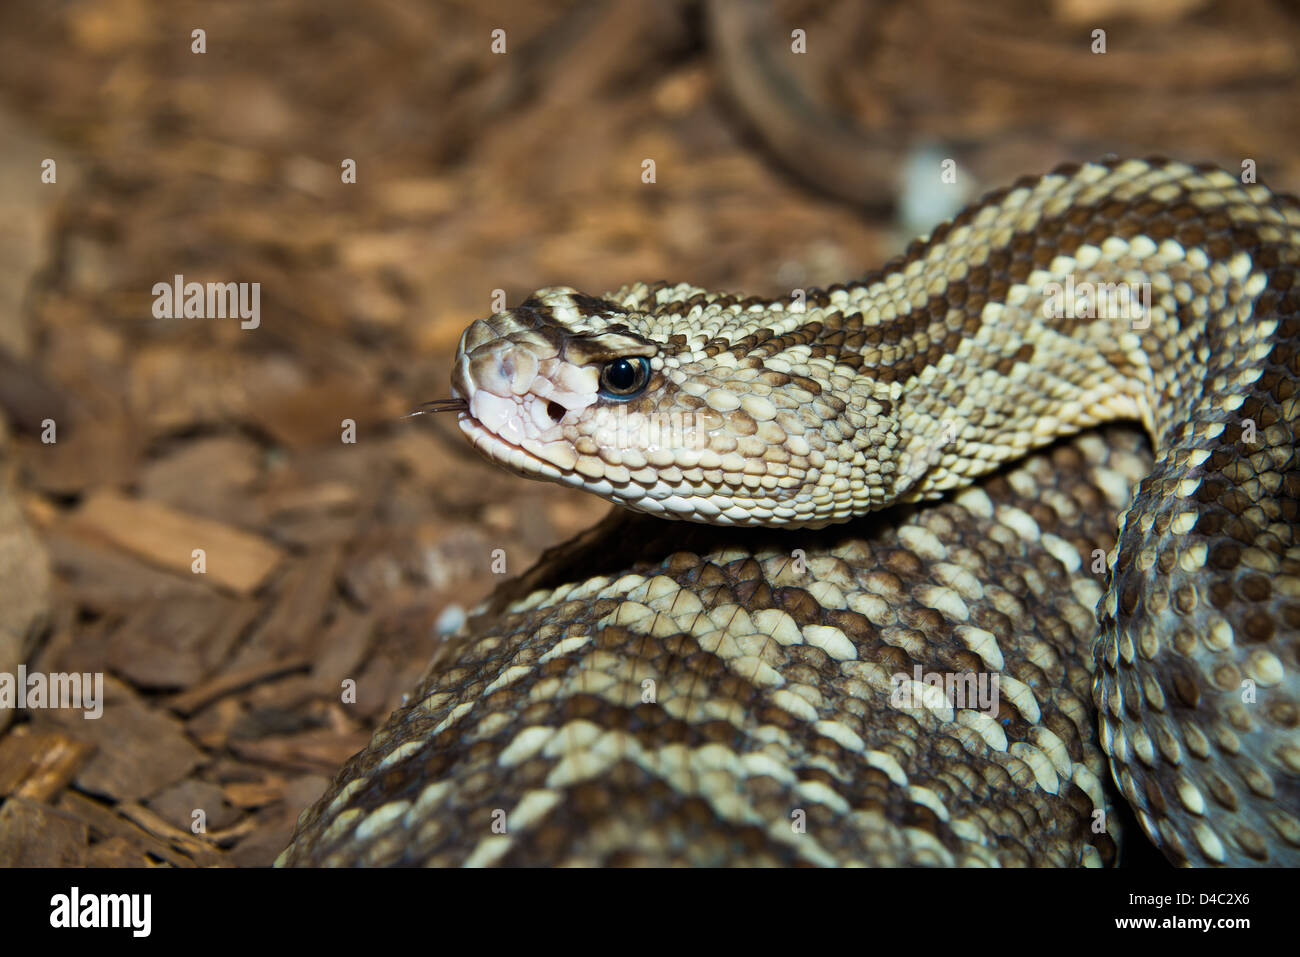 This is an image of a snake - Stock Image